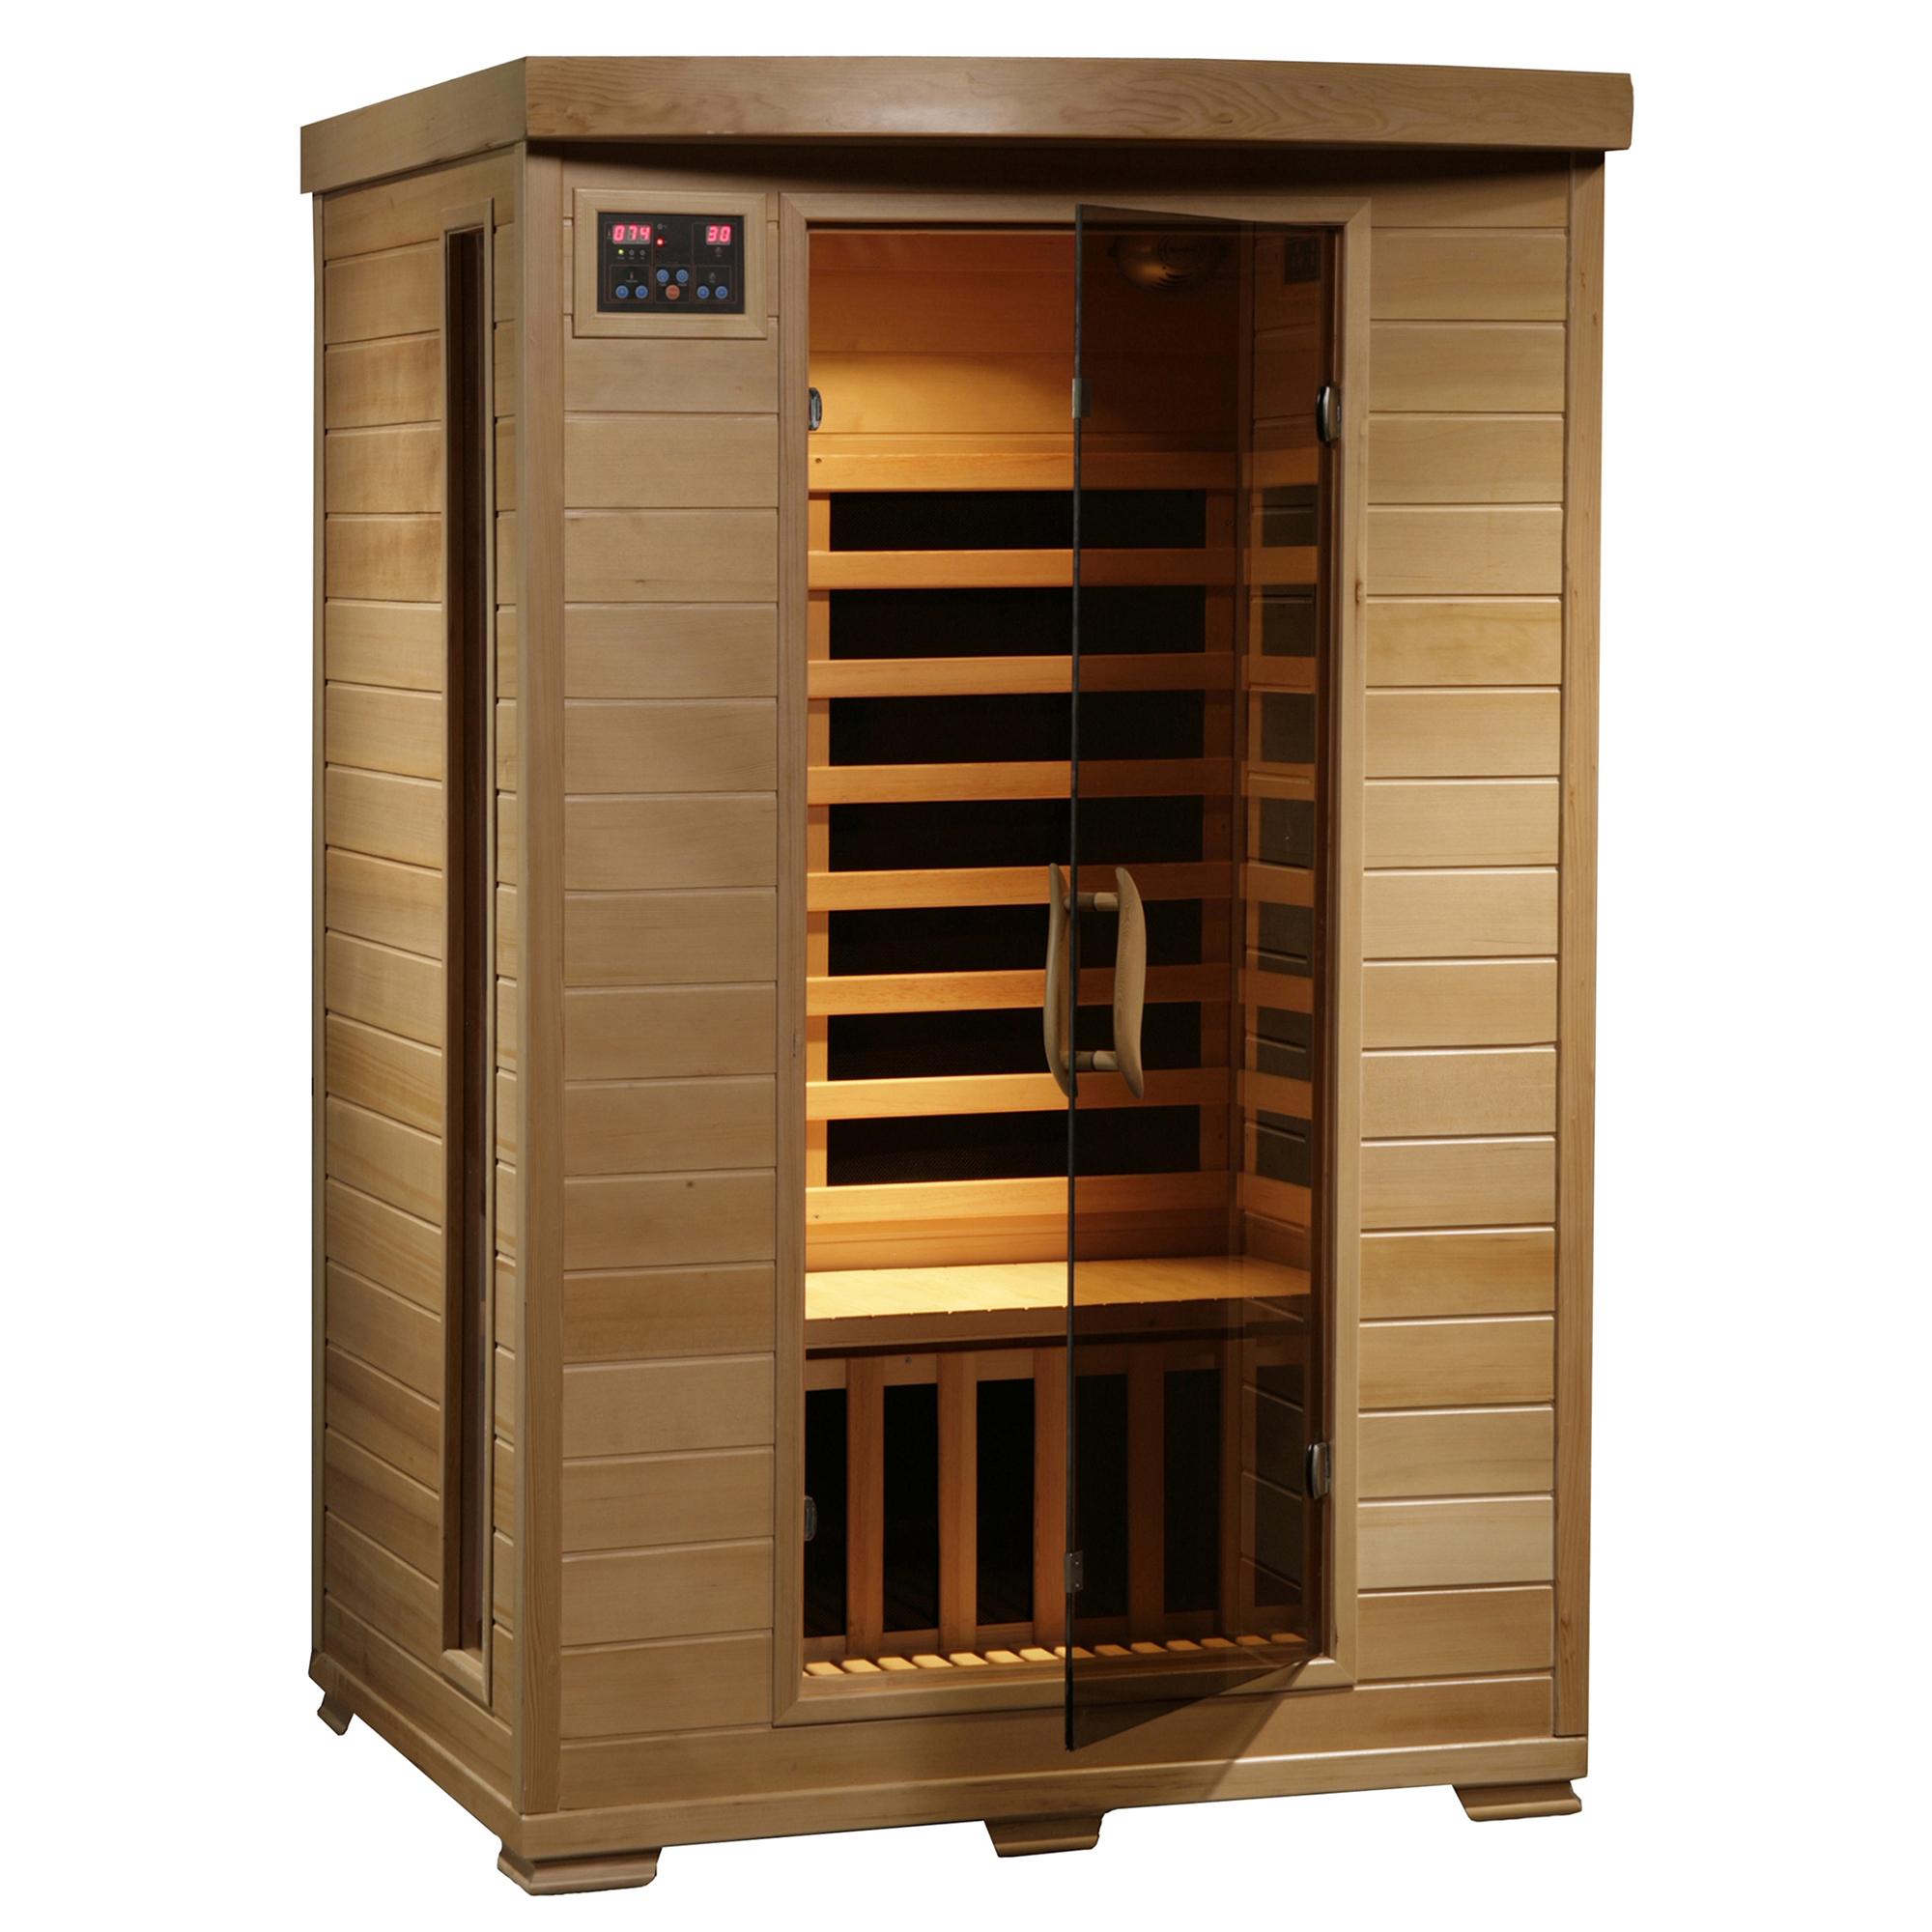 Radiant Saunas 2-Person Hemlock Deluxe Infrared Sauna w  6 Carbon Heaters by Blue Wave